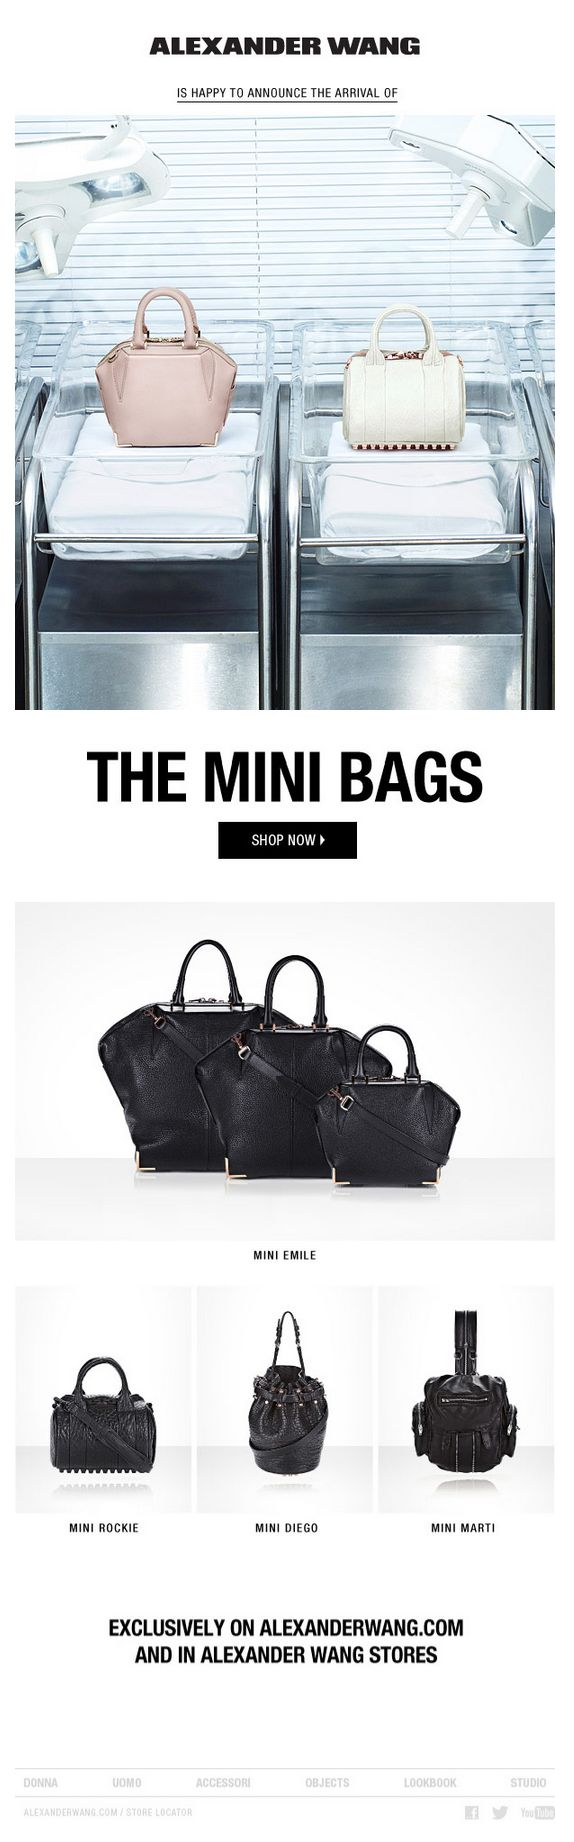 Alexander wang special delivery the mini bags